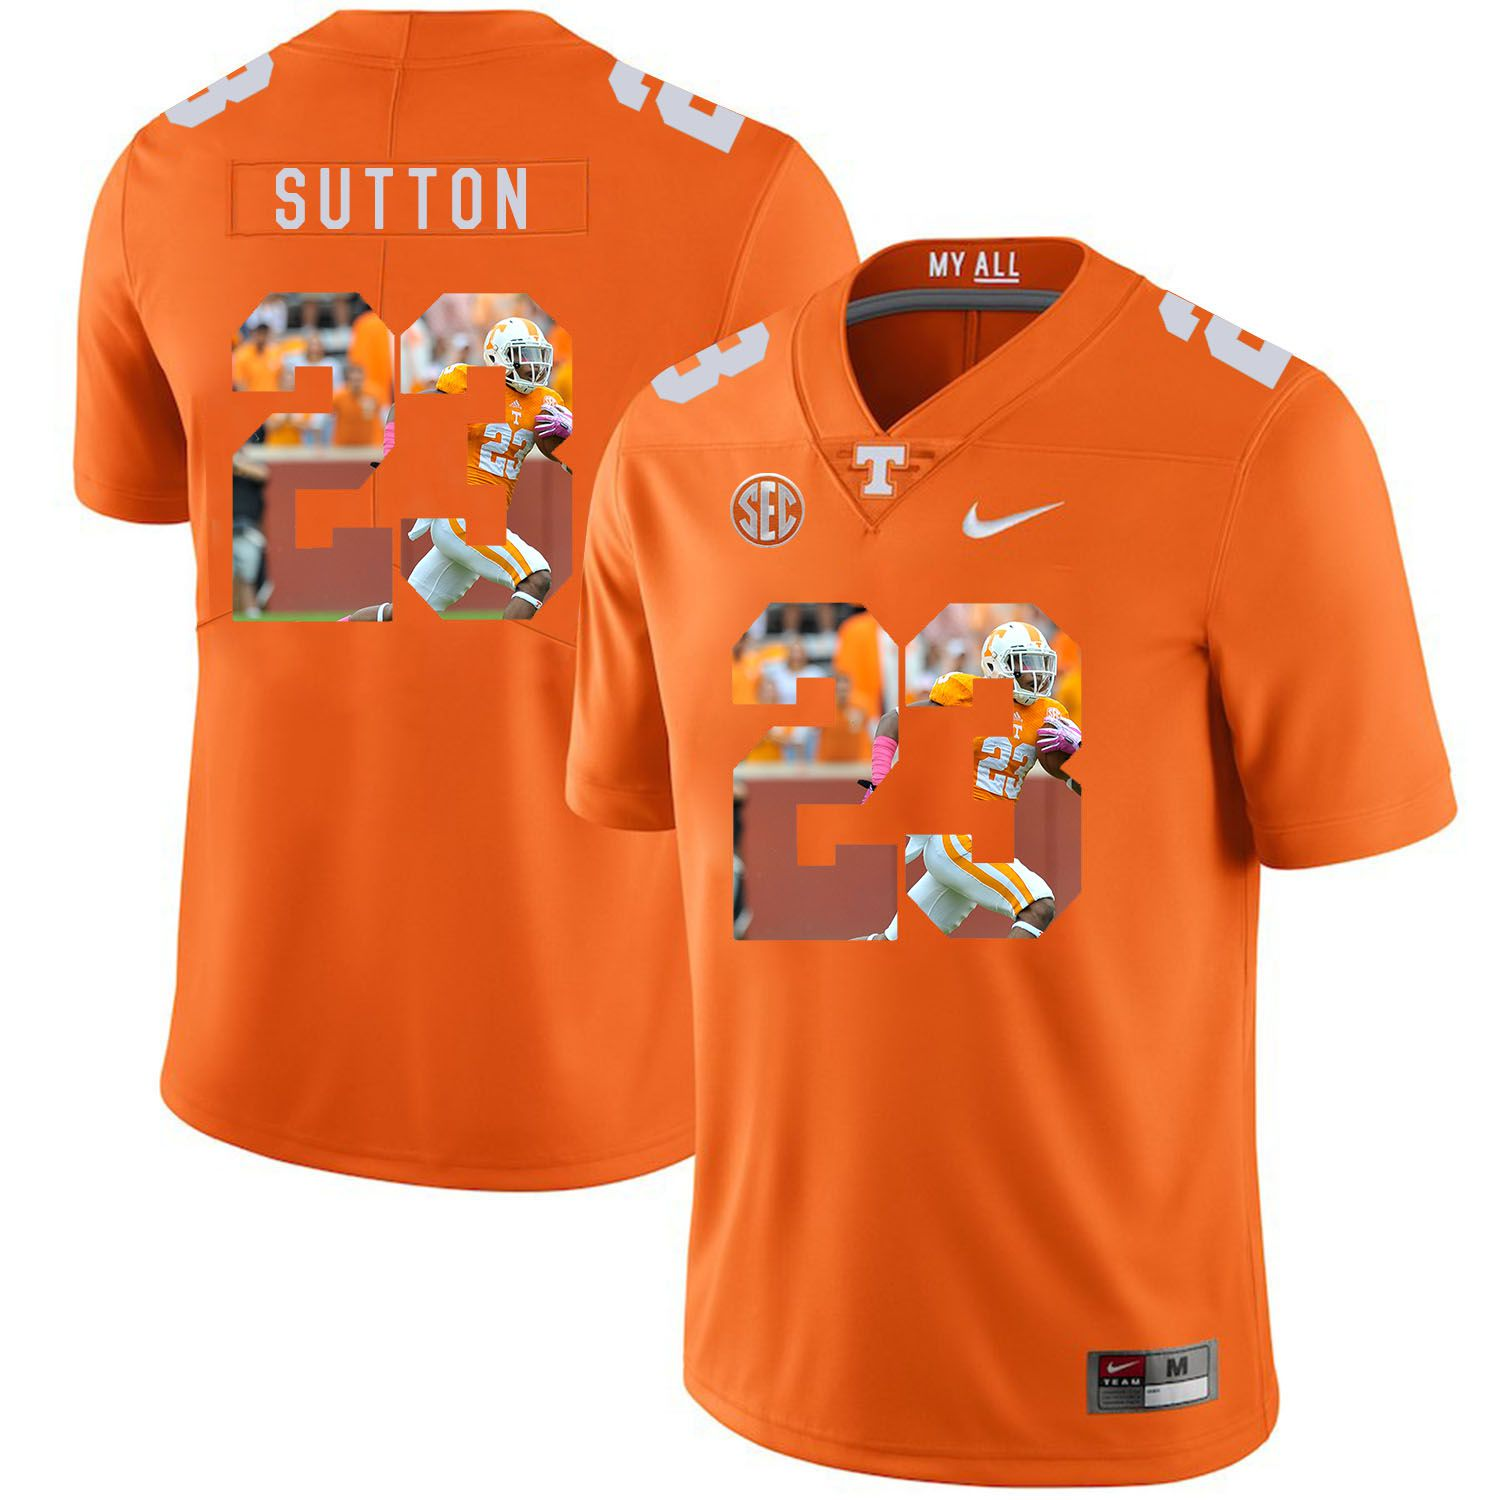 Men Tennessee Volunteers 23 Sutton Orange Fashion Edition Customized NCAA Jerseys